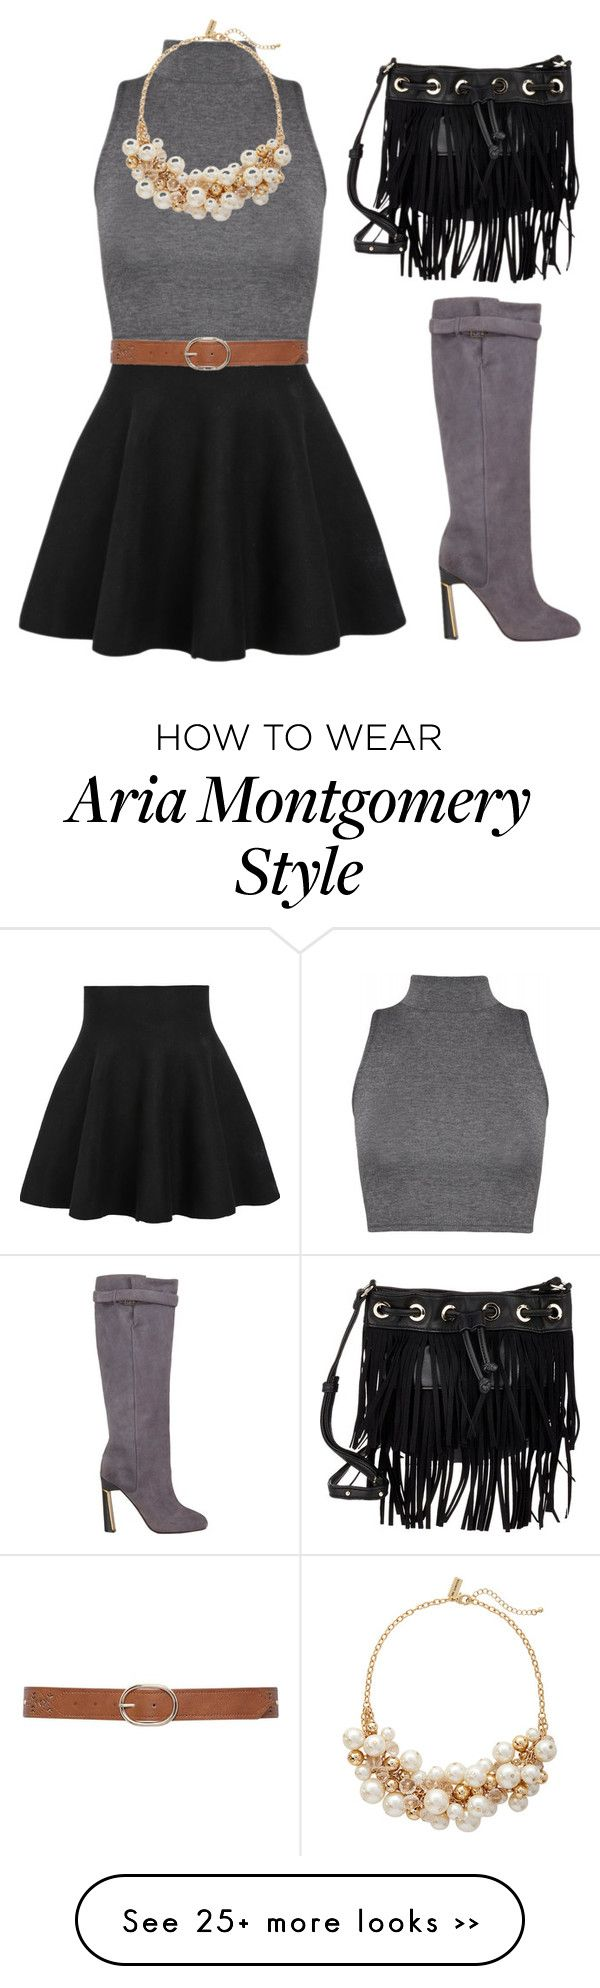 aria montgomery episode 23 by zzeelleestyles on polyvore dressy pinterest kleidung. Black Bedroom Furniture Sets. Home Design Ideas